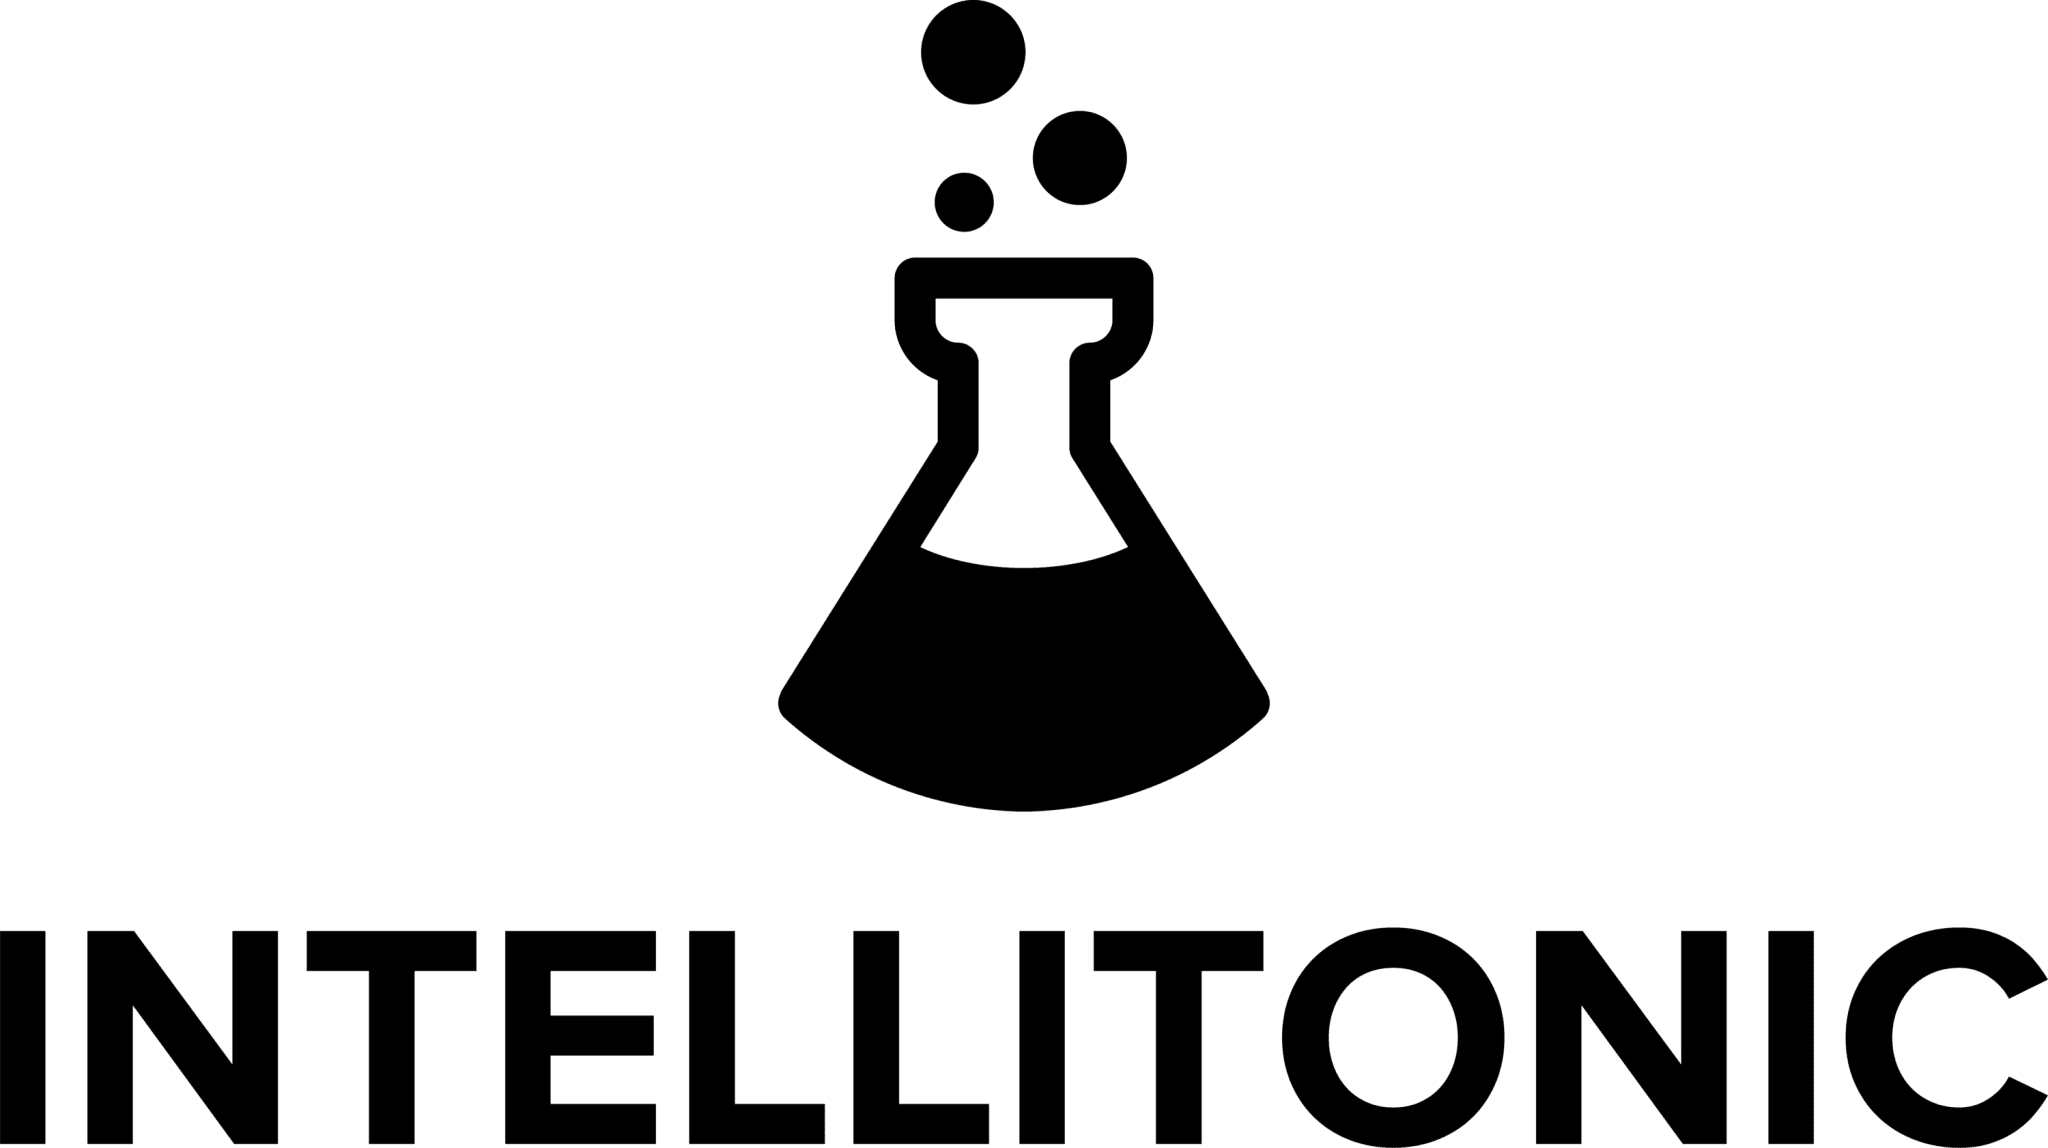 Bellingham Bay Marathon Sponsor Intellitonic